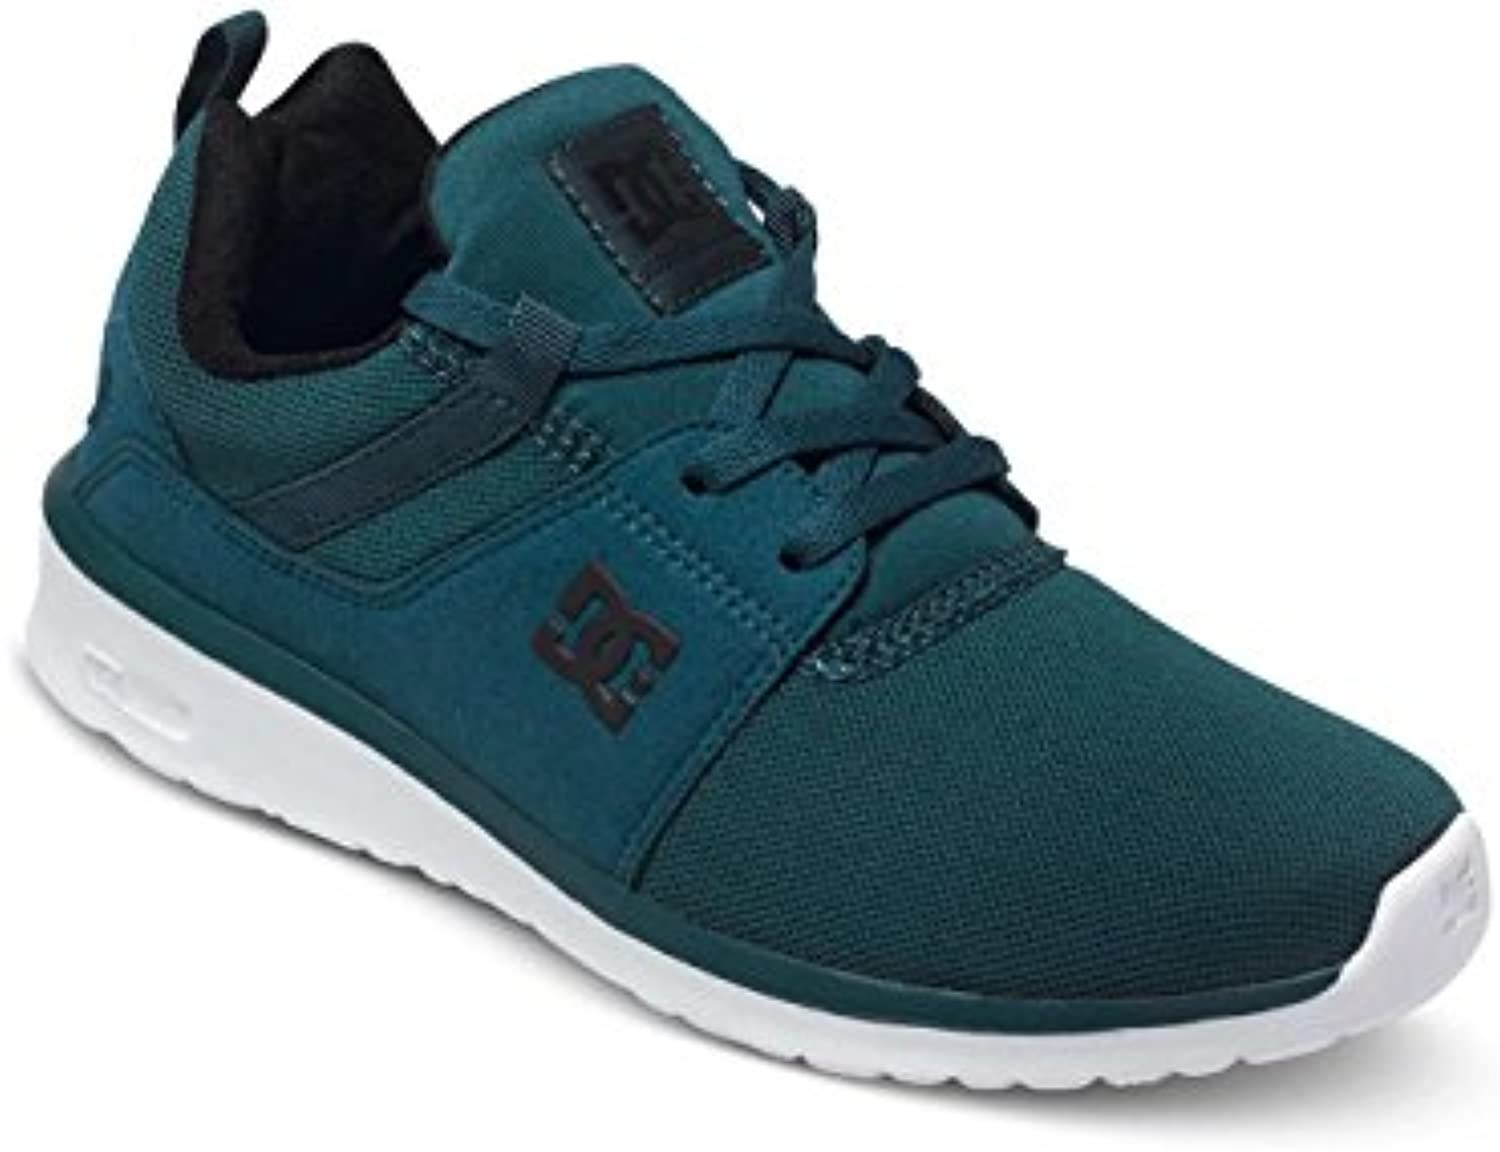 Gola Harrier 50 Leather White/Sky Blue, Zapatillas para Mujer -